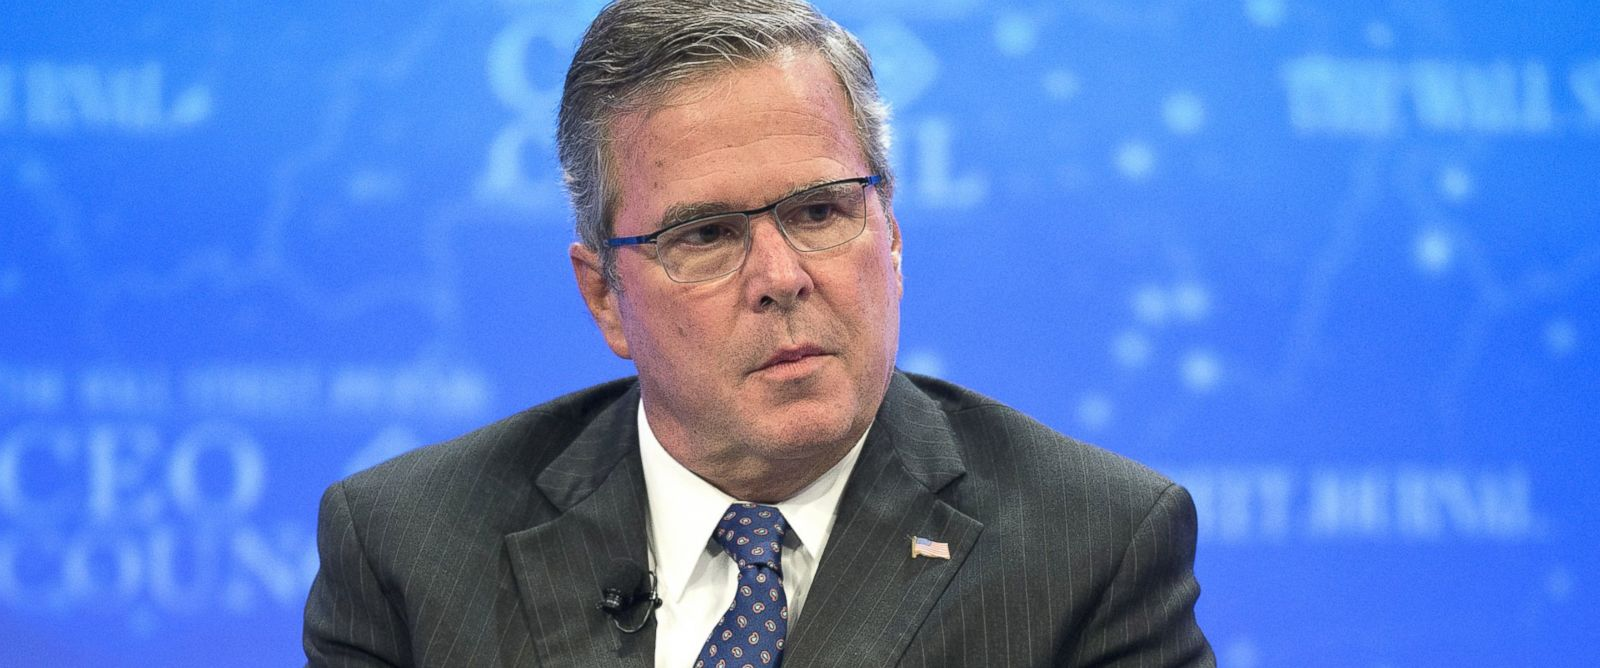 PHOTO: Former Florida Governor Jeb Bush speaks during the Wall Street Journal CEO Council in Washington, Dec. 1, 2014.